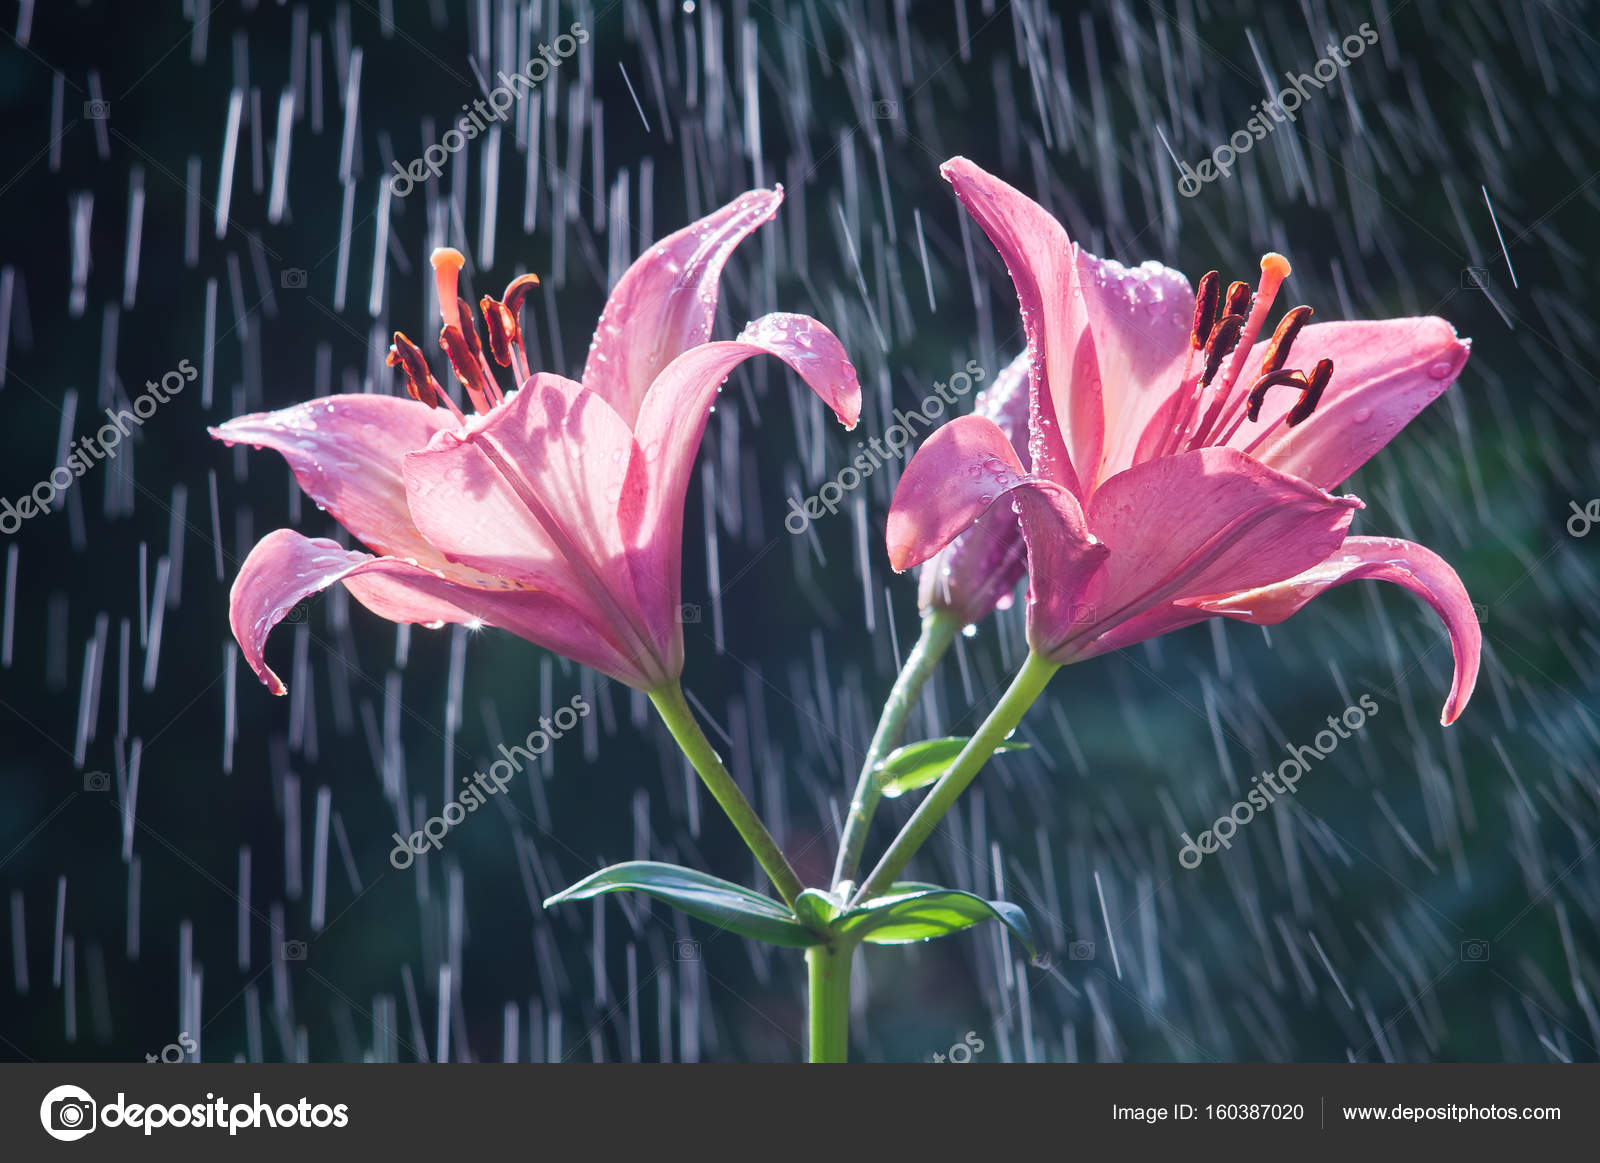 Flowers of purple lilies against the background of rain tracks flowers of purple lilies against the background of rain tracks stock photo izmirmasajfo